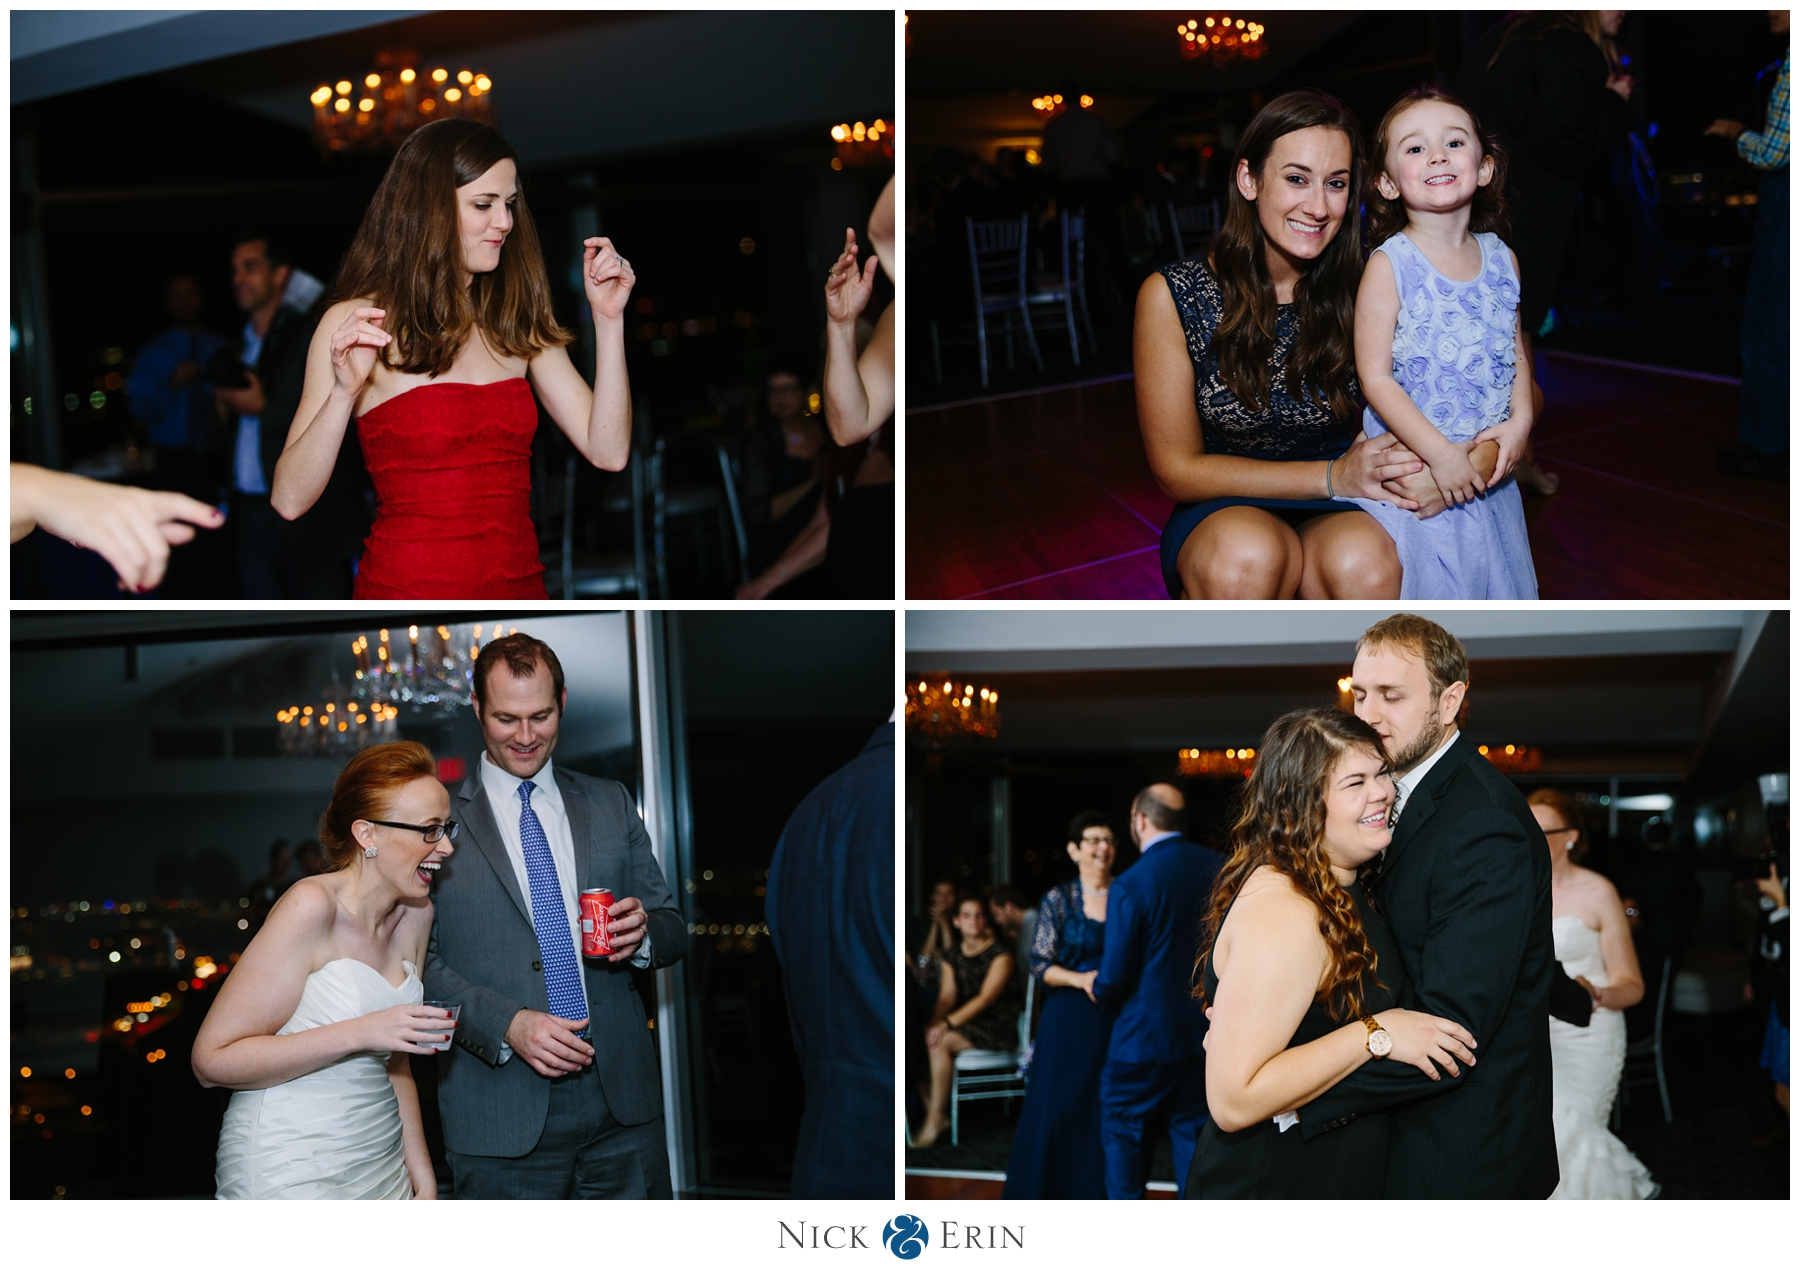 donner_photography_washington-dc-wedding_alanna-josh_0051